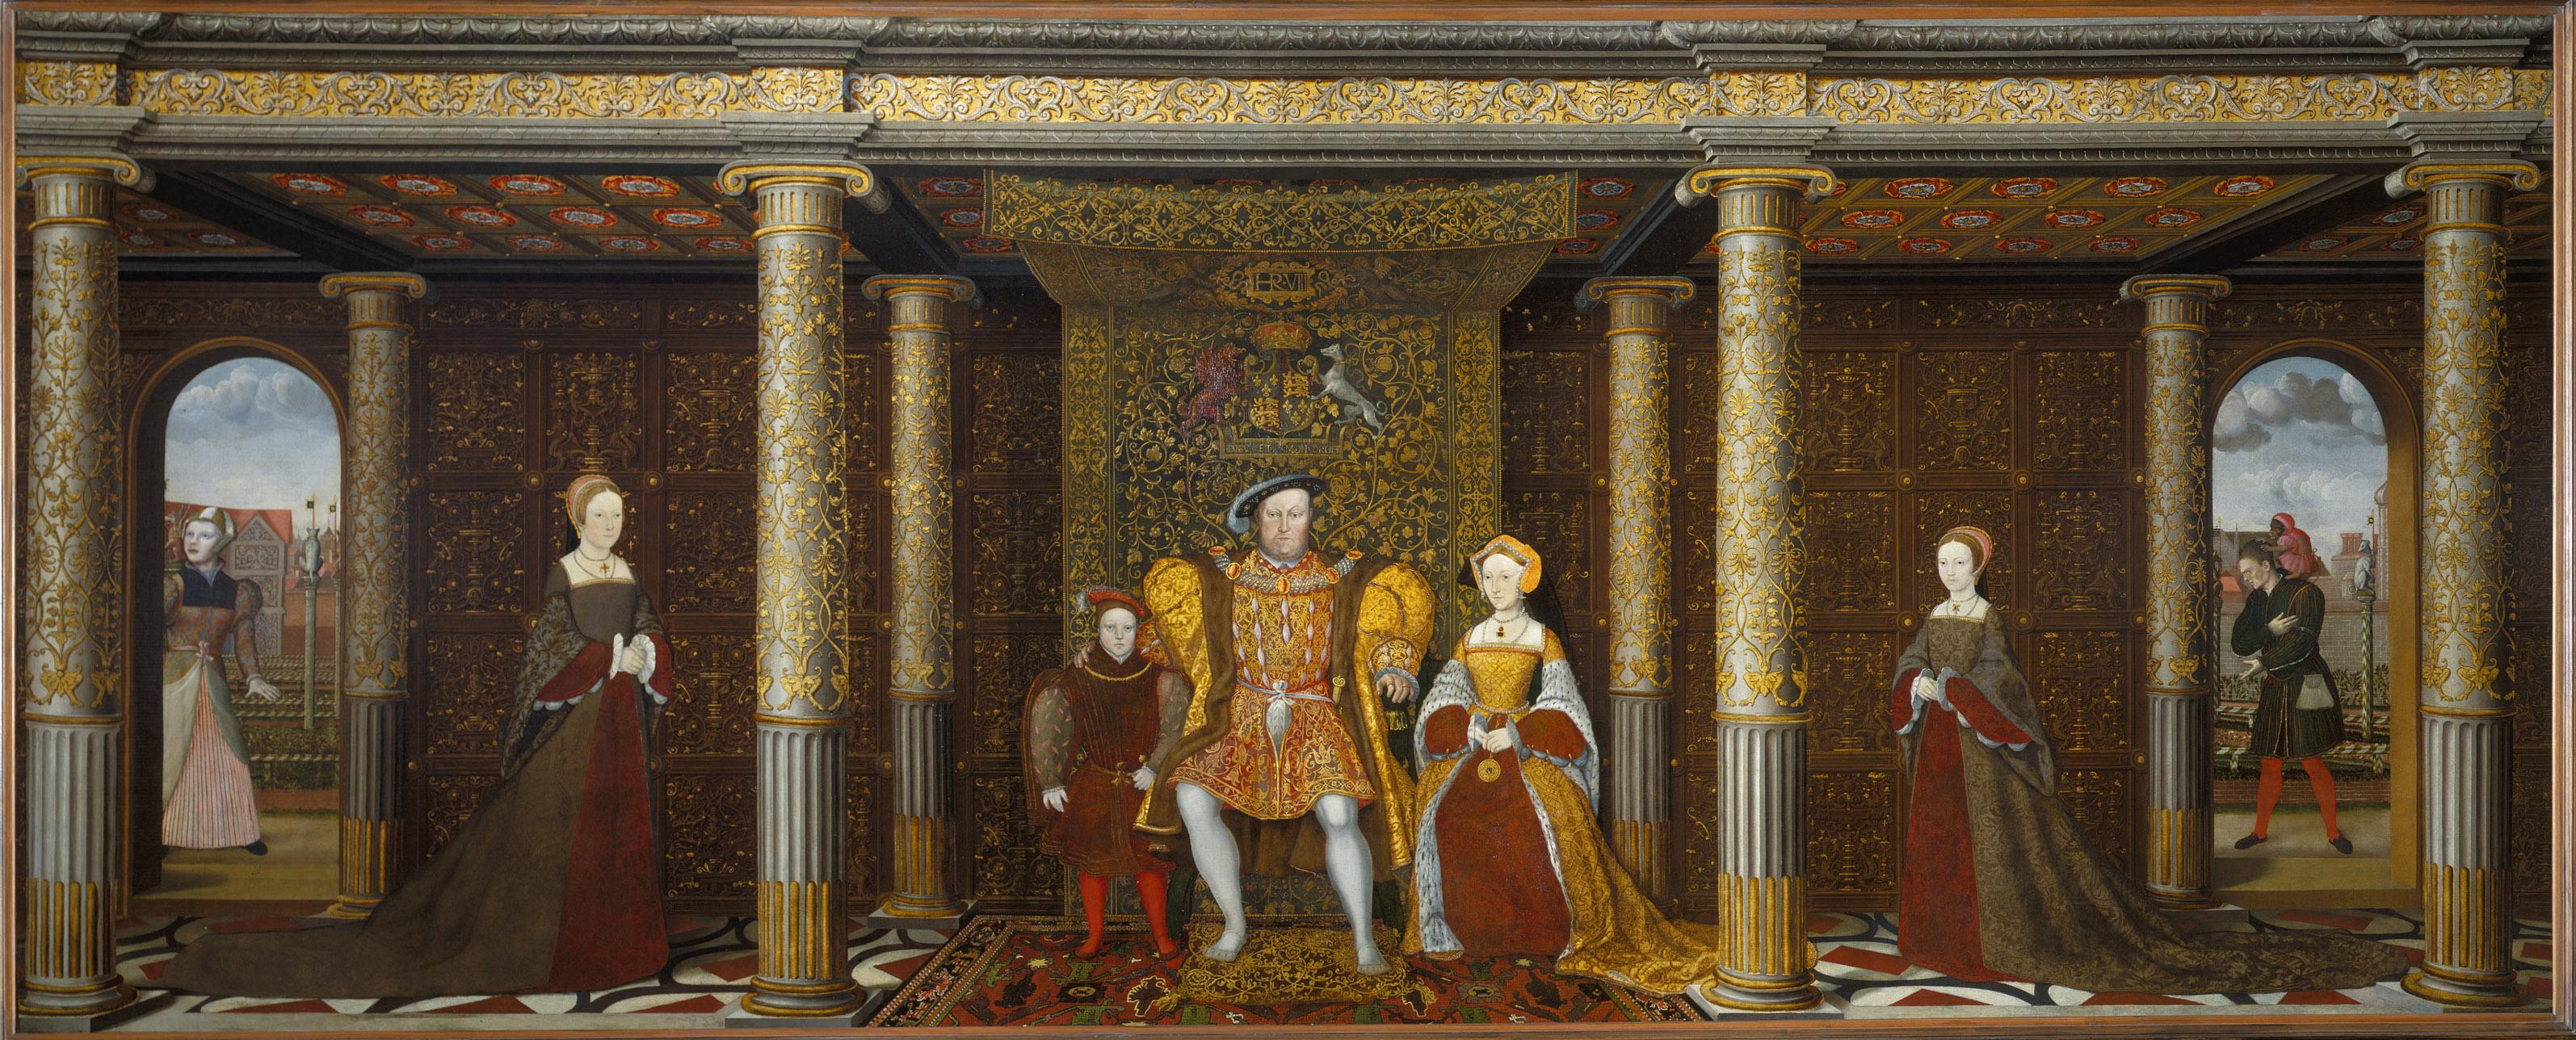 http://upload.wikimedia.org/wikipedia/commons/3/3a/Family_of_Henry_VIII_c_1545.jpg